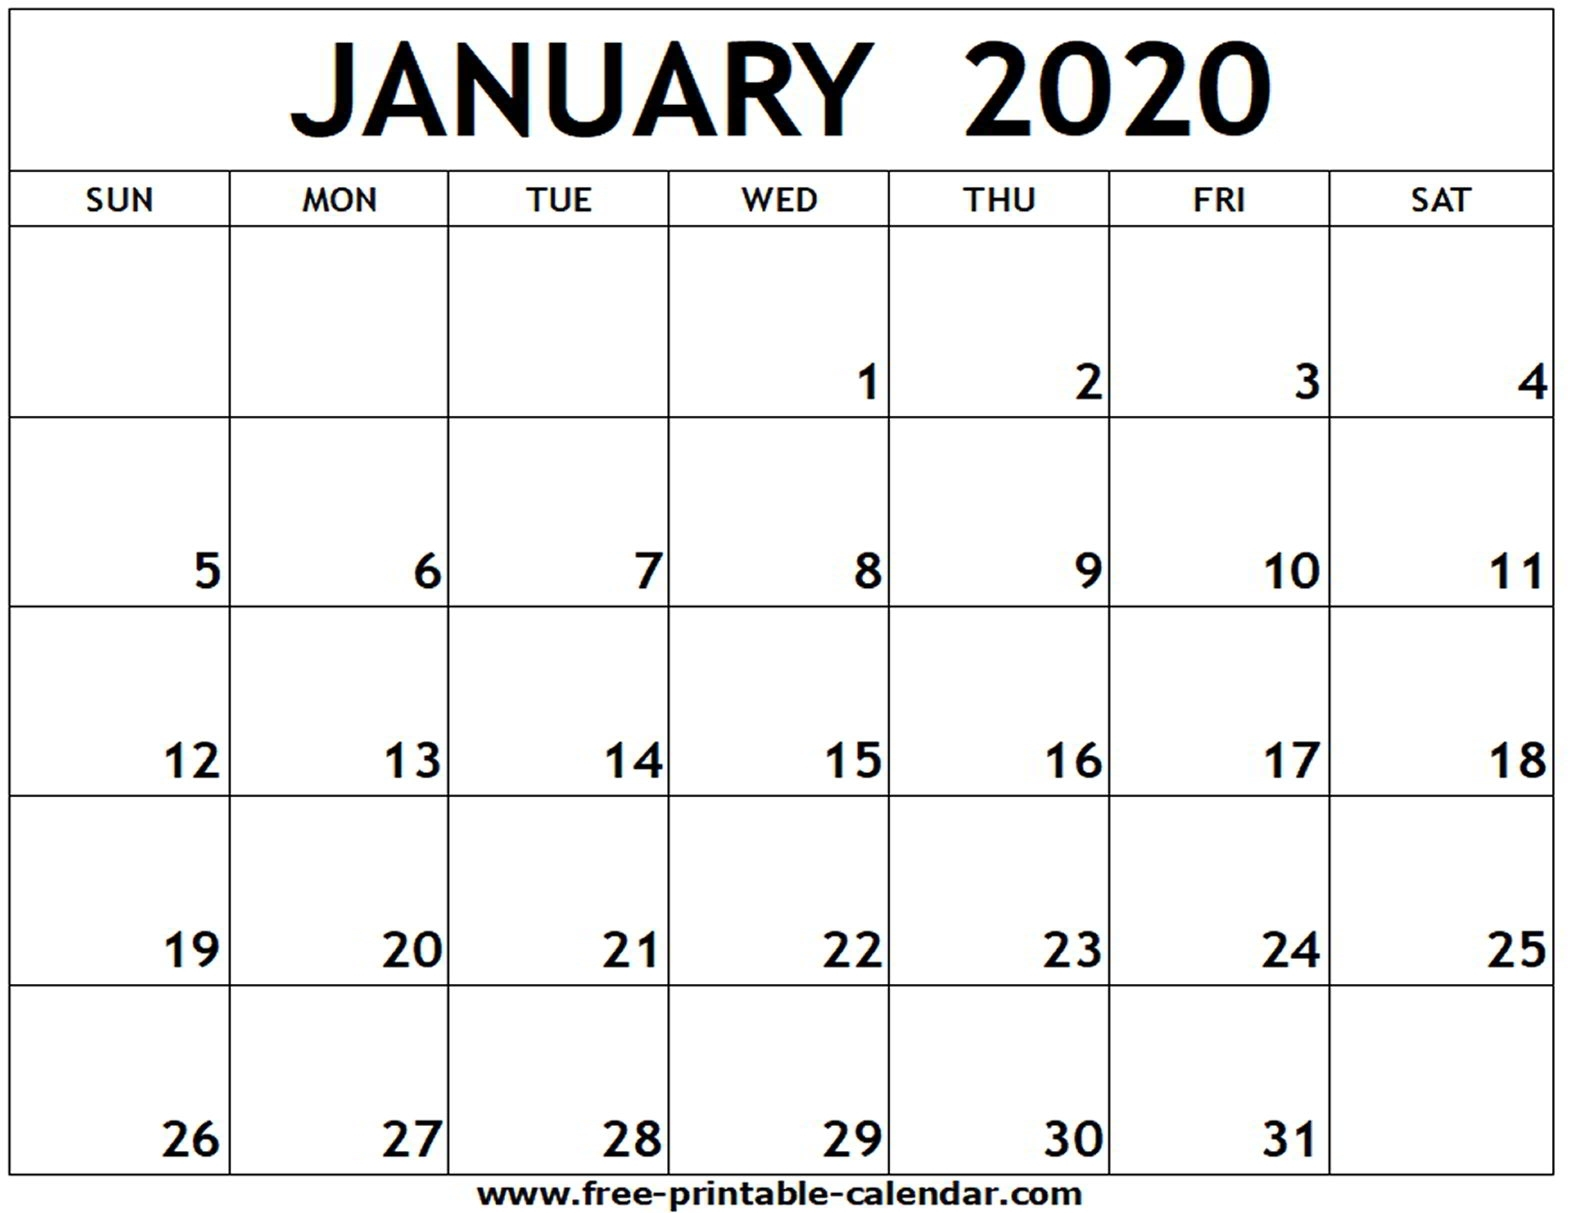 January 2020 Printable Calendar - Free-Printable-Calendar for 2020 Fill In Calendar Fill In